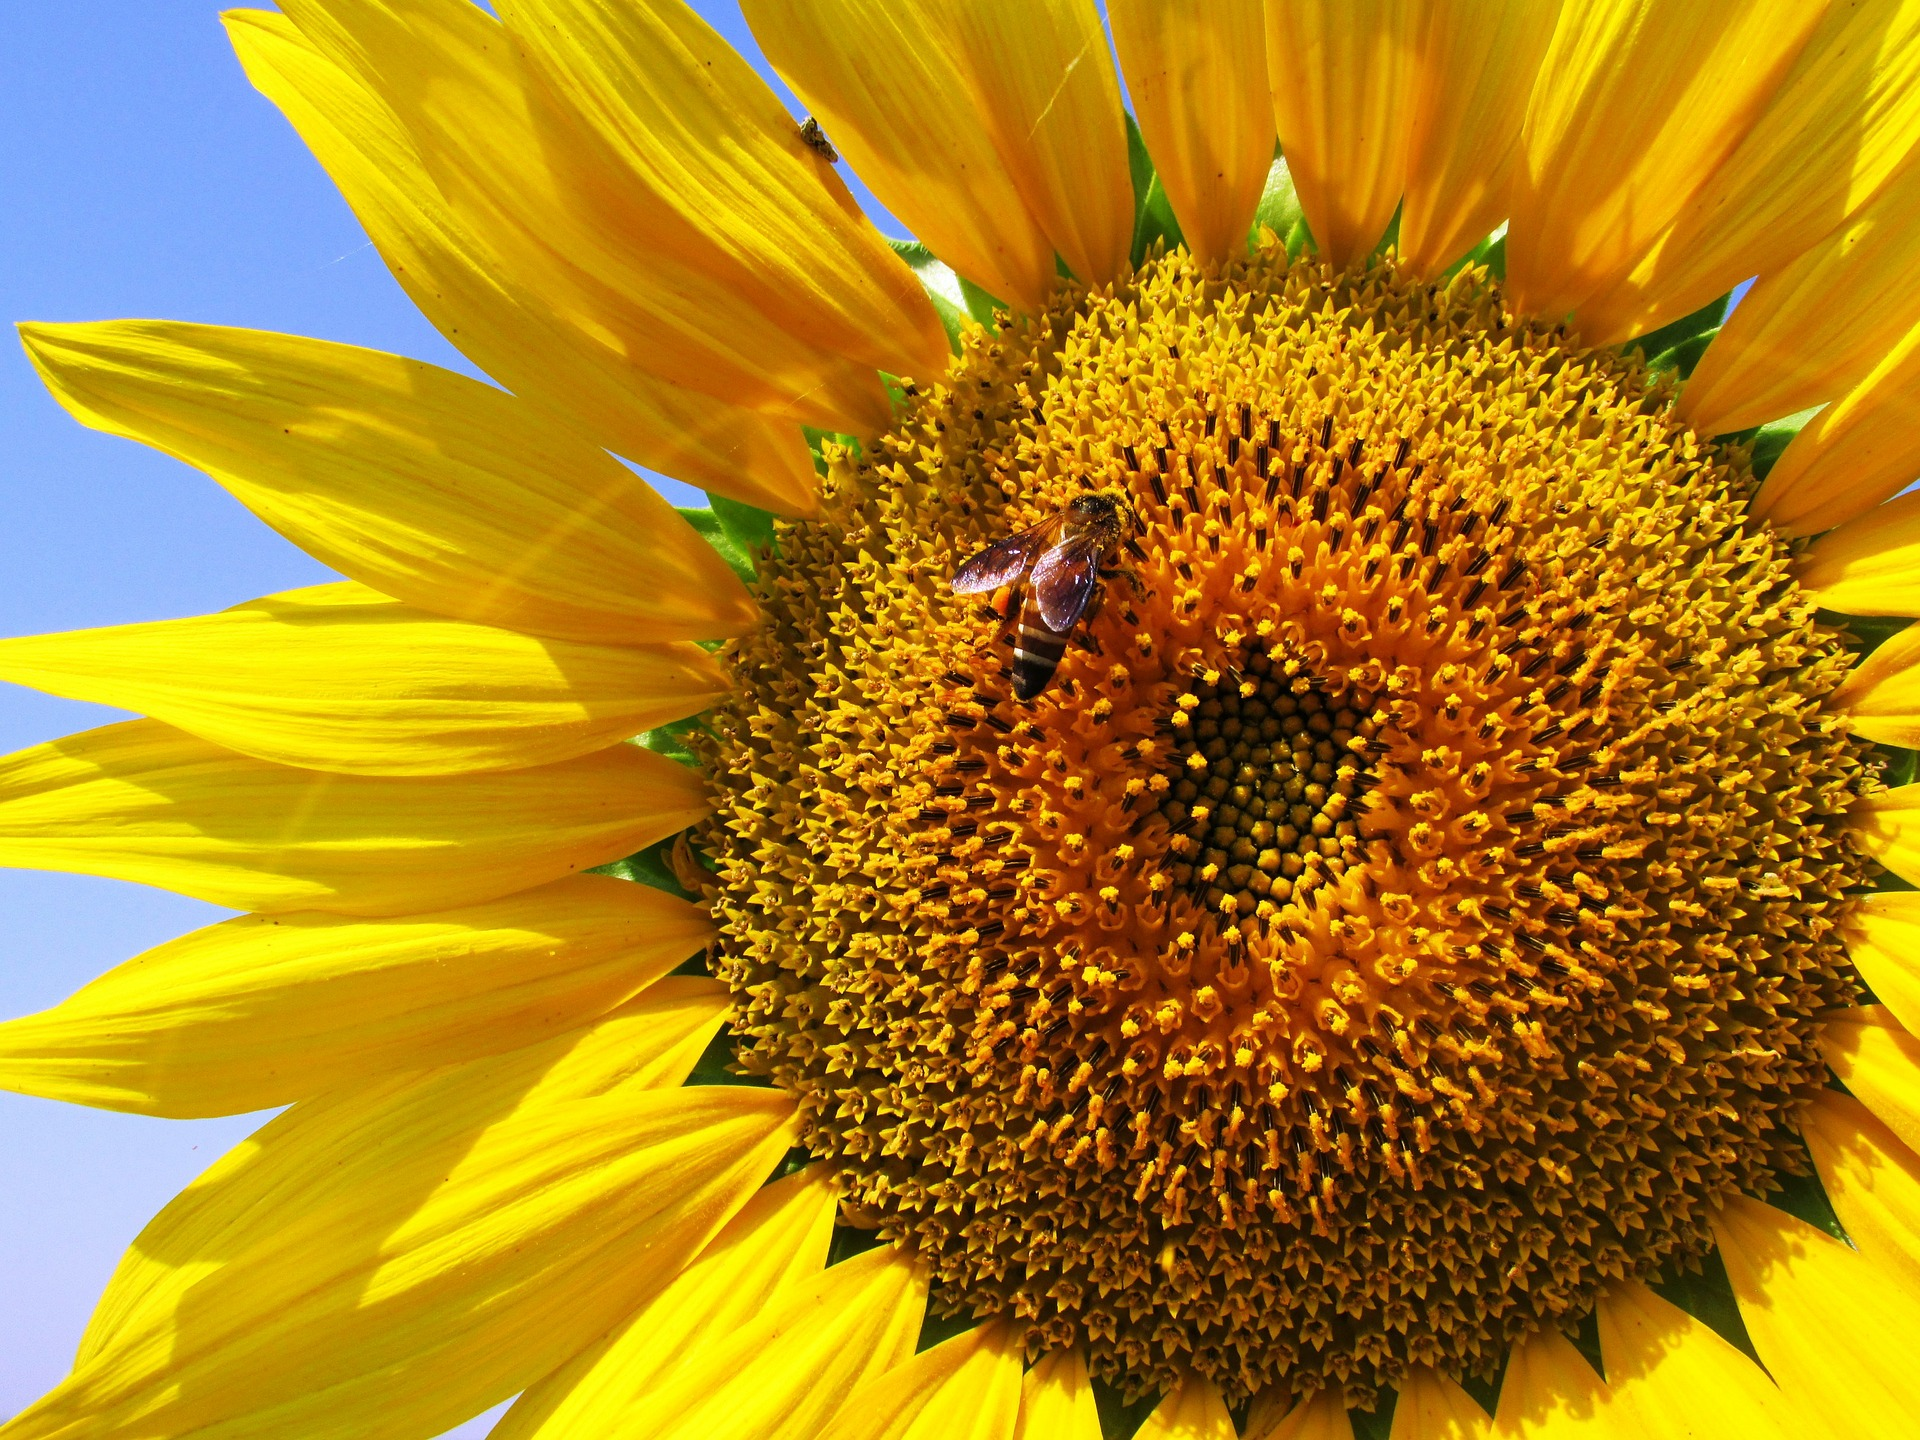 sunflower-268012_1920